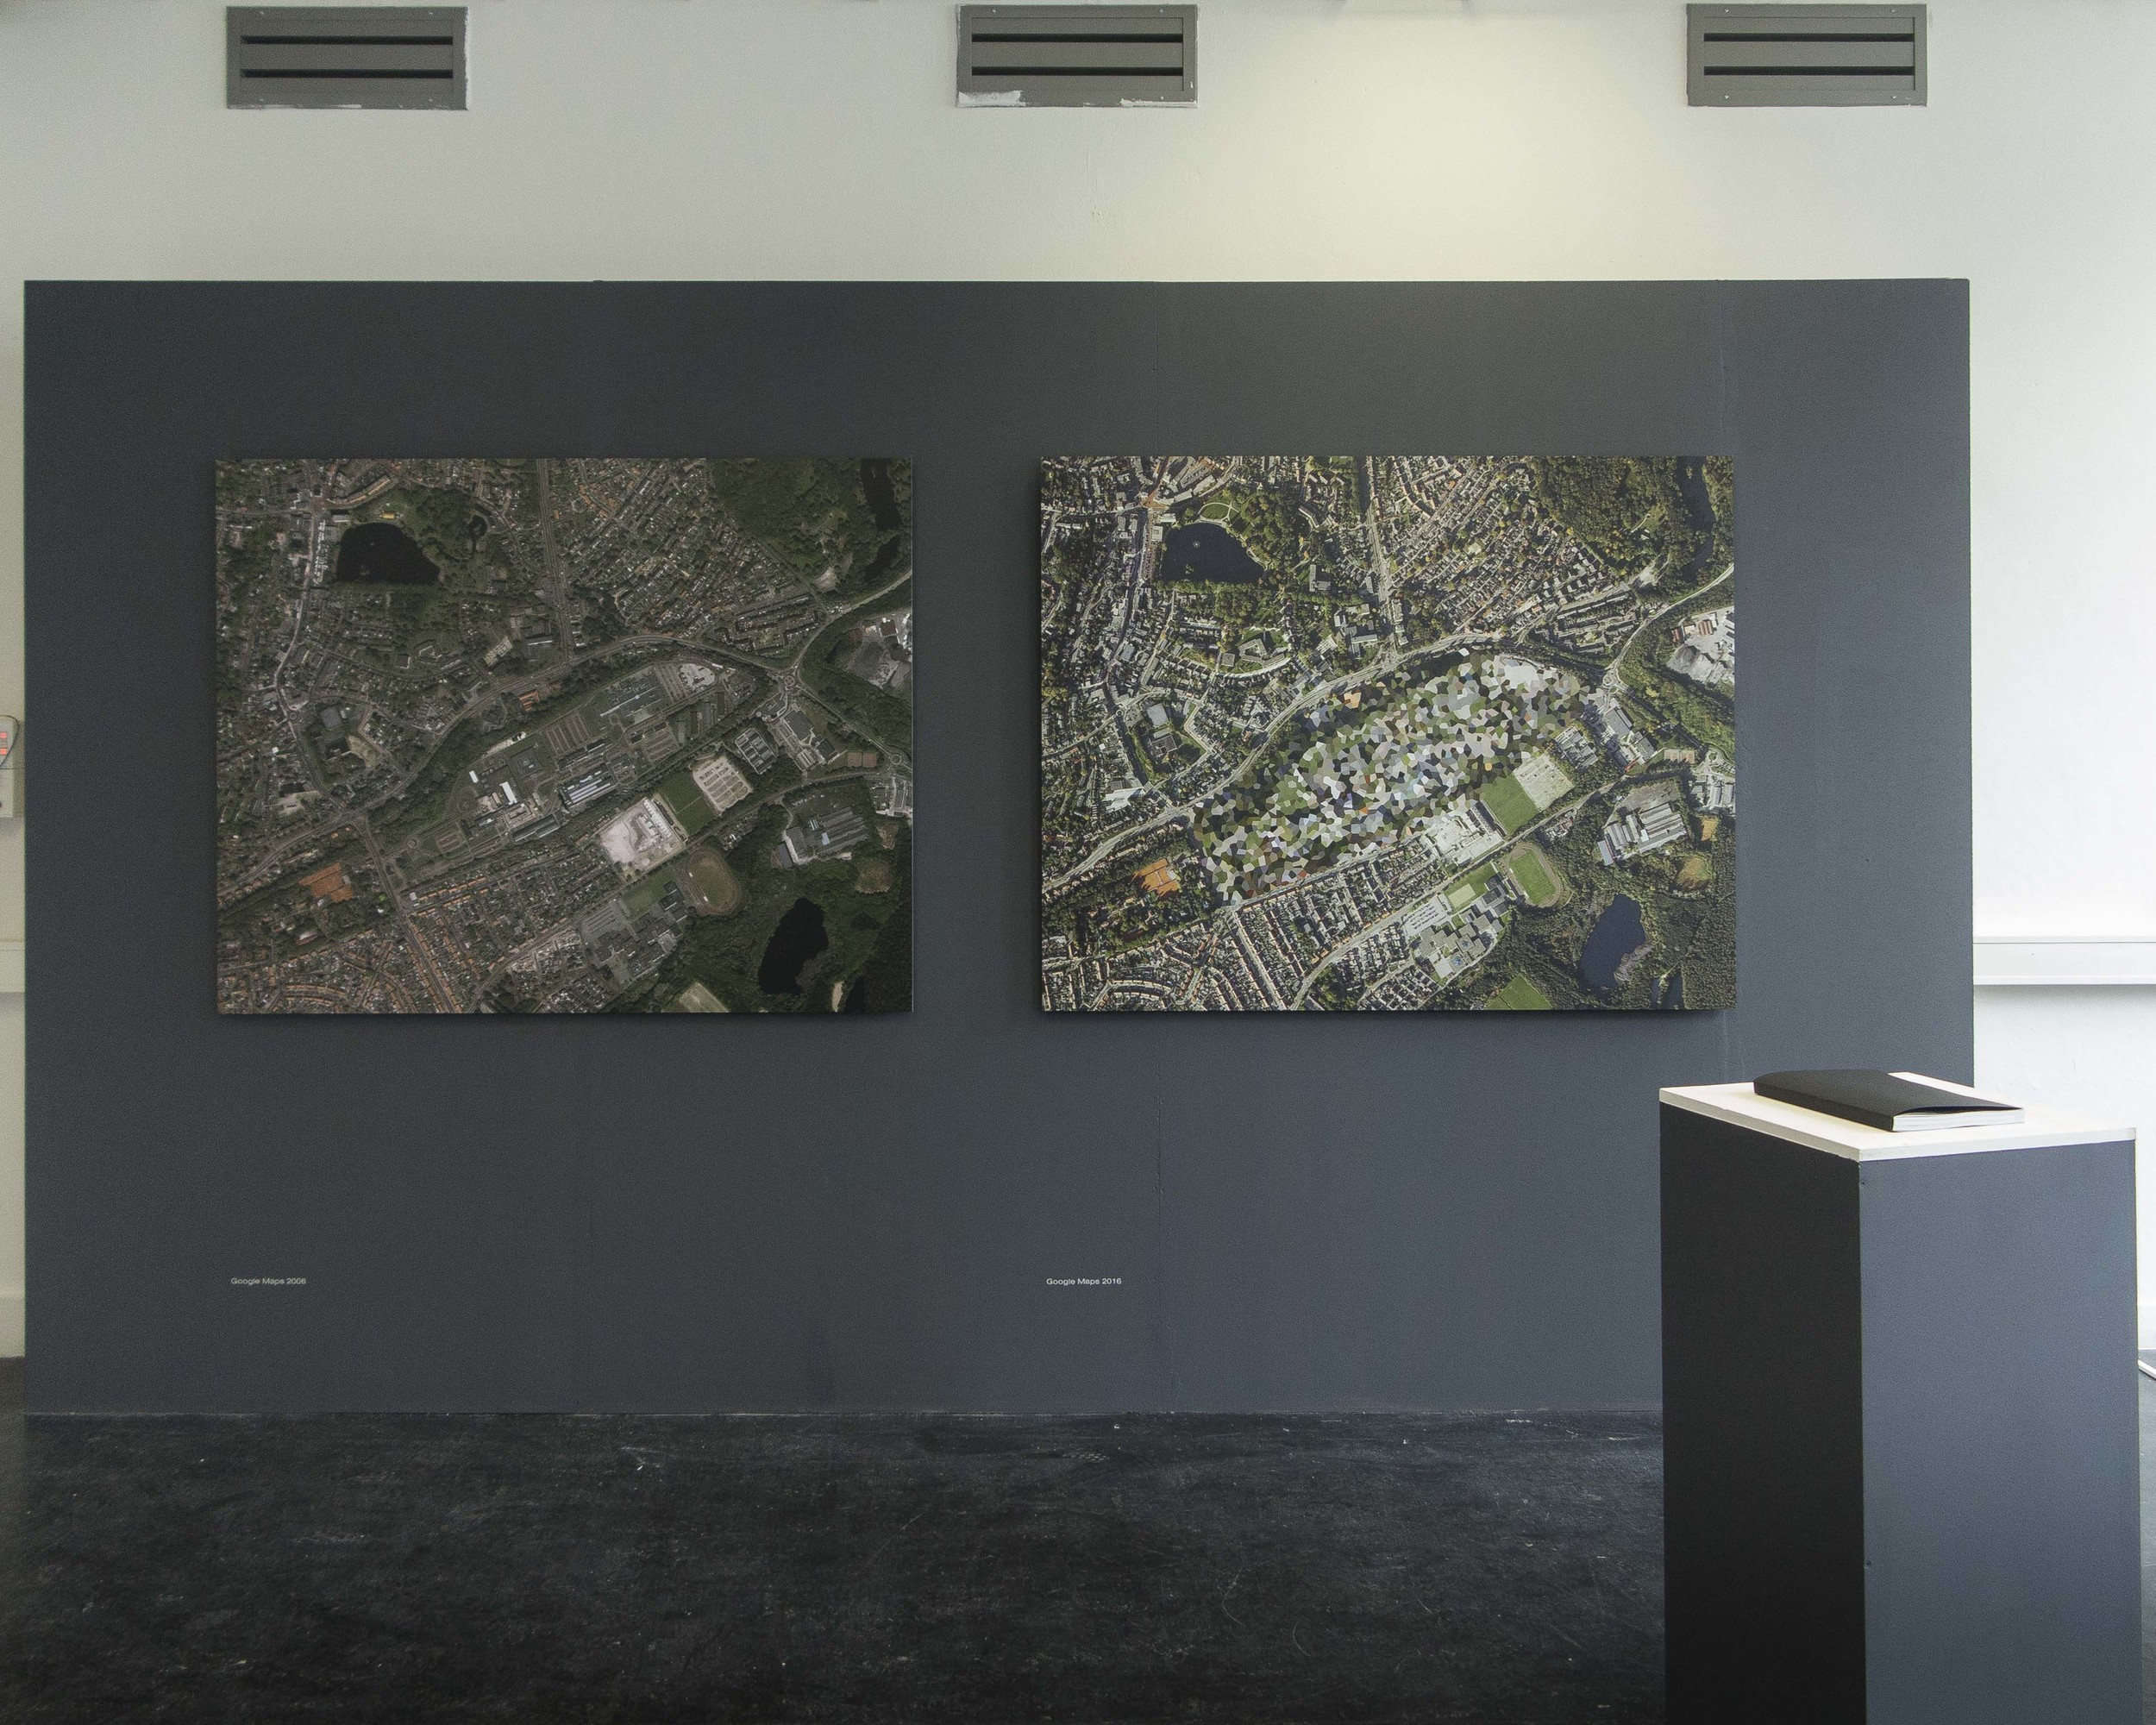 """Exhibition """"IN THE NAME OF SECURITY"""" at the Royal Academy Of Art, The Hague 2016 © Fabian Fraikin"""